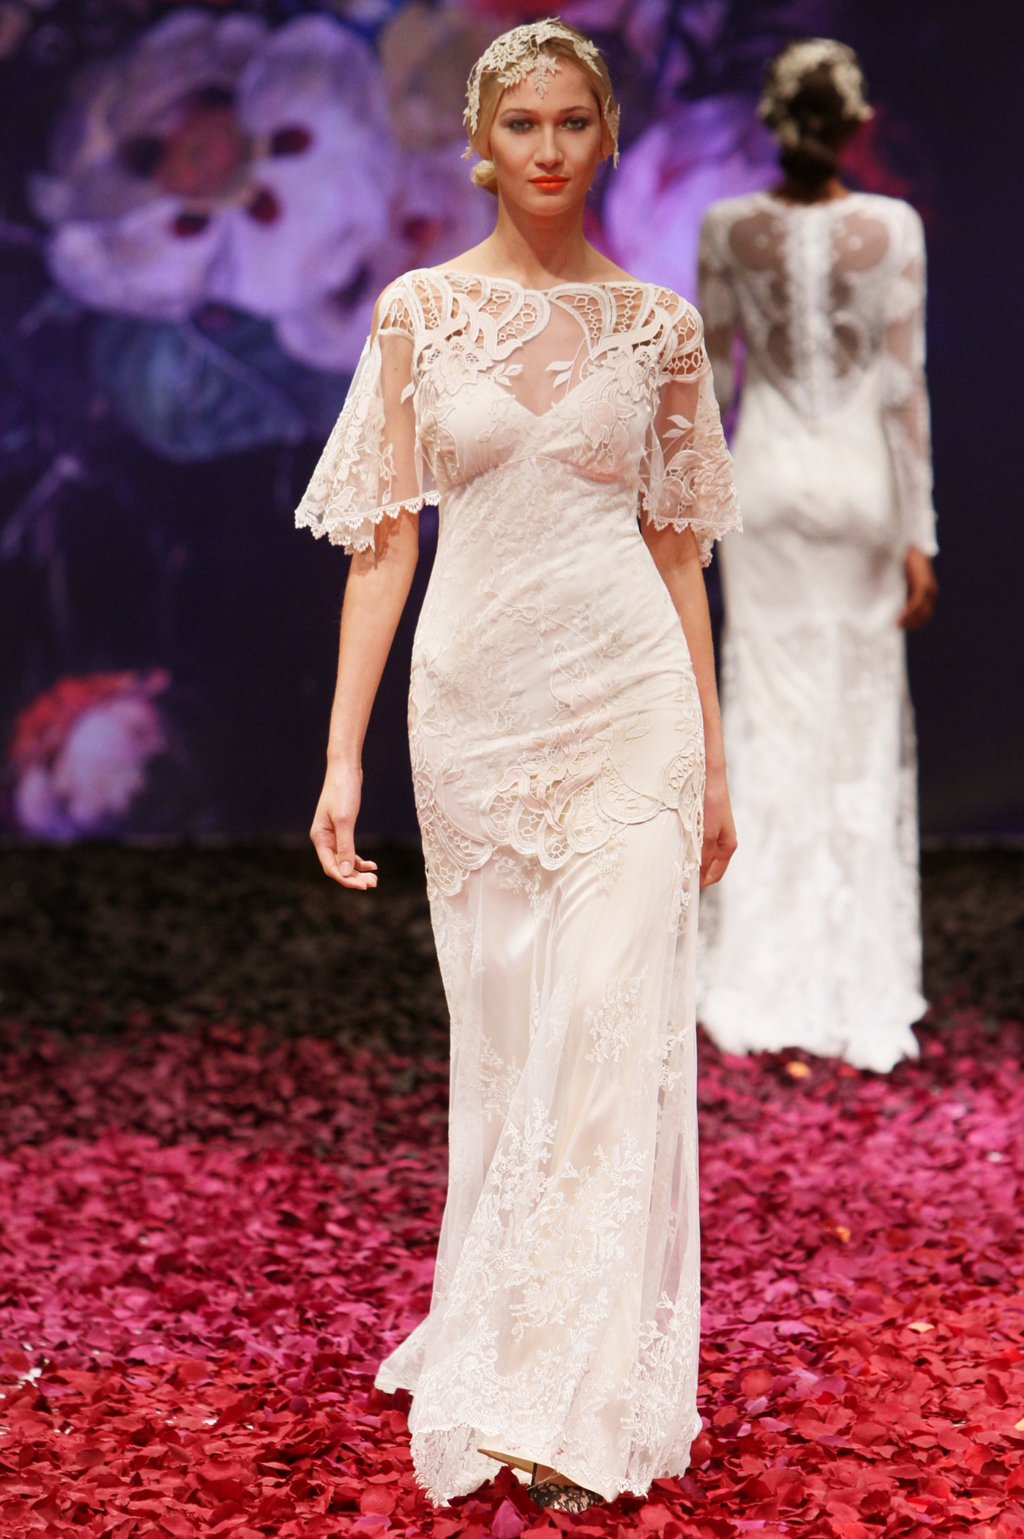 Amaryllis-wedding-dress-by-claire-pettibone-2014-still-life-bridal-collection.full